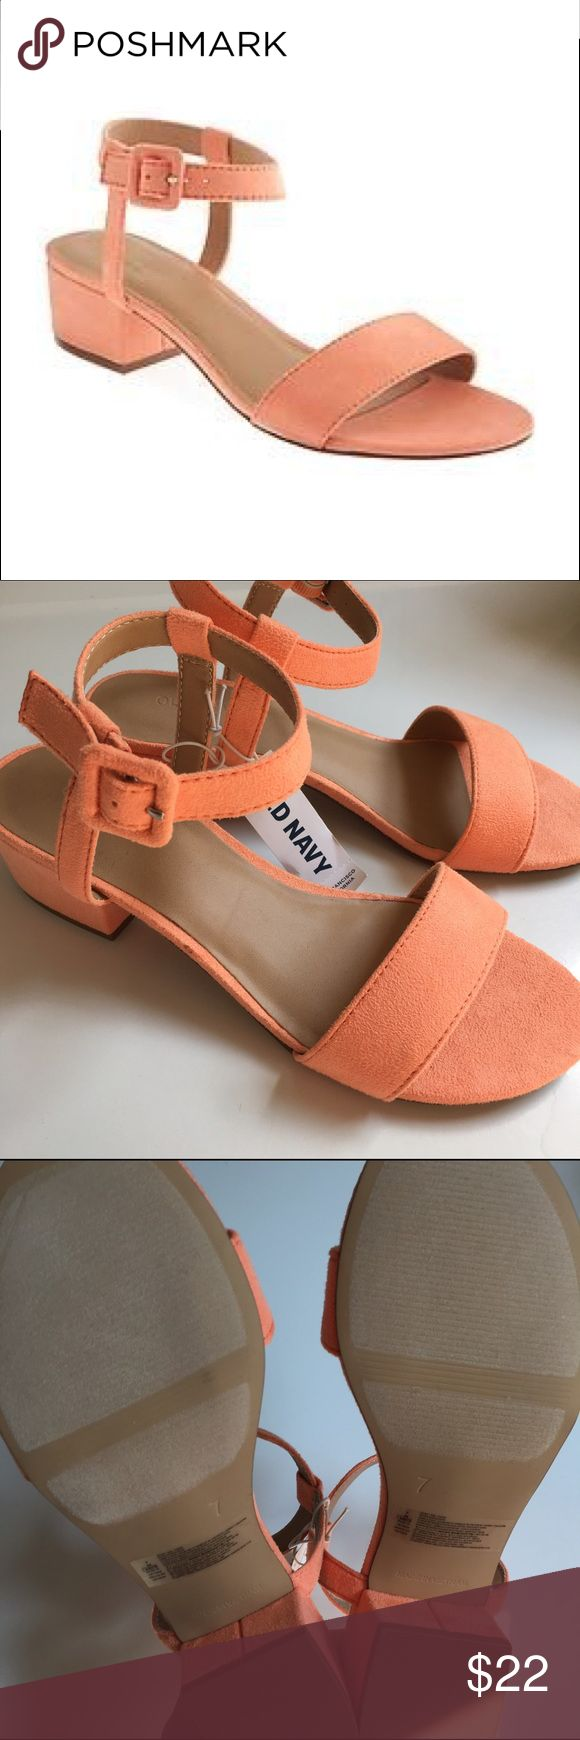 NWT Old Navy Suede Heeled Sandal, Peach, Size 7 Great little heels for summer. Retro look, faux suede. New with tags! Similar to Marais USA sandals. Sold out at Old Navy. Old Navy Shoes